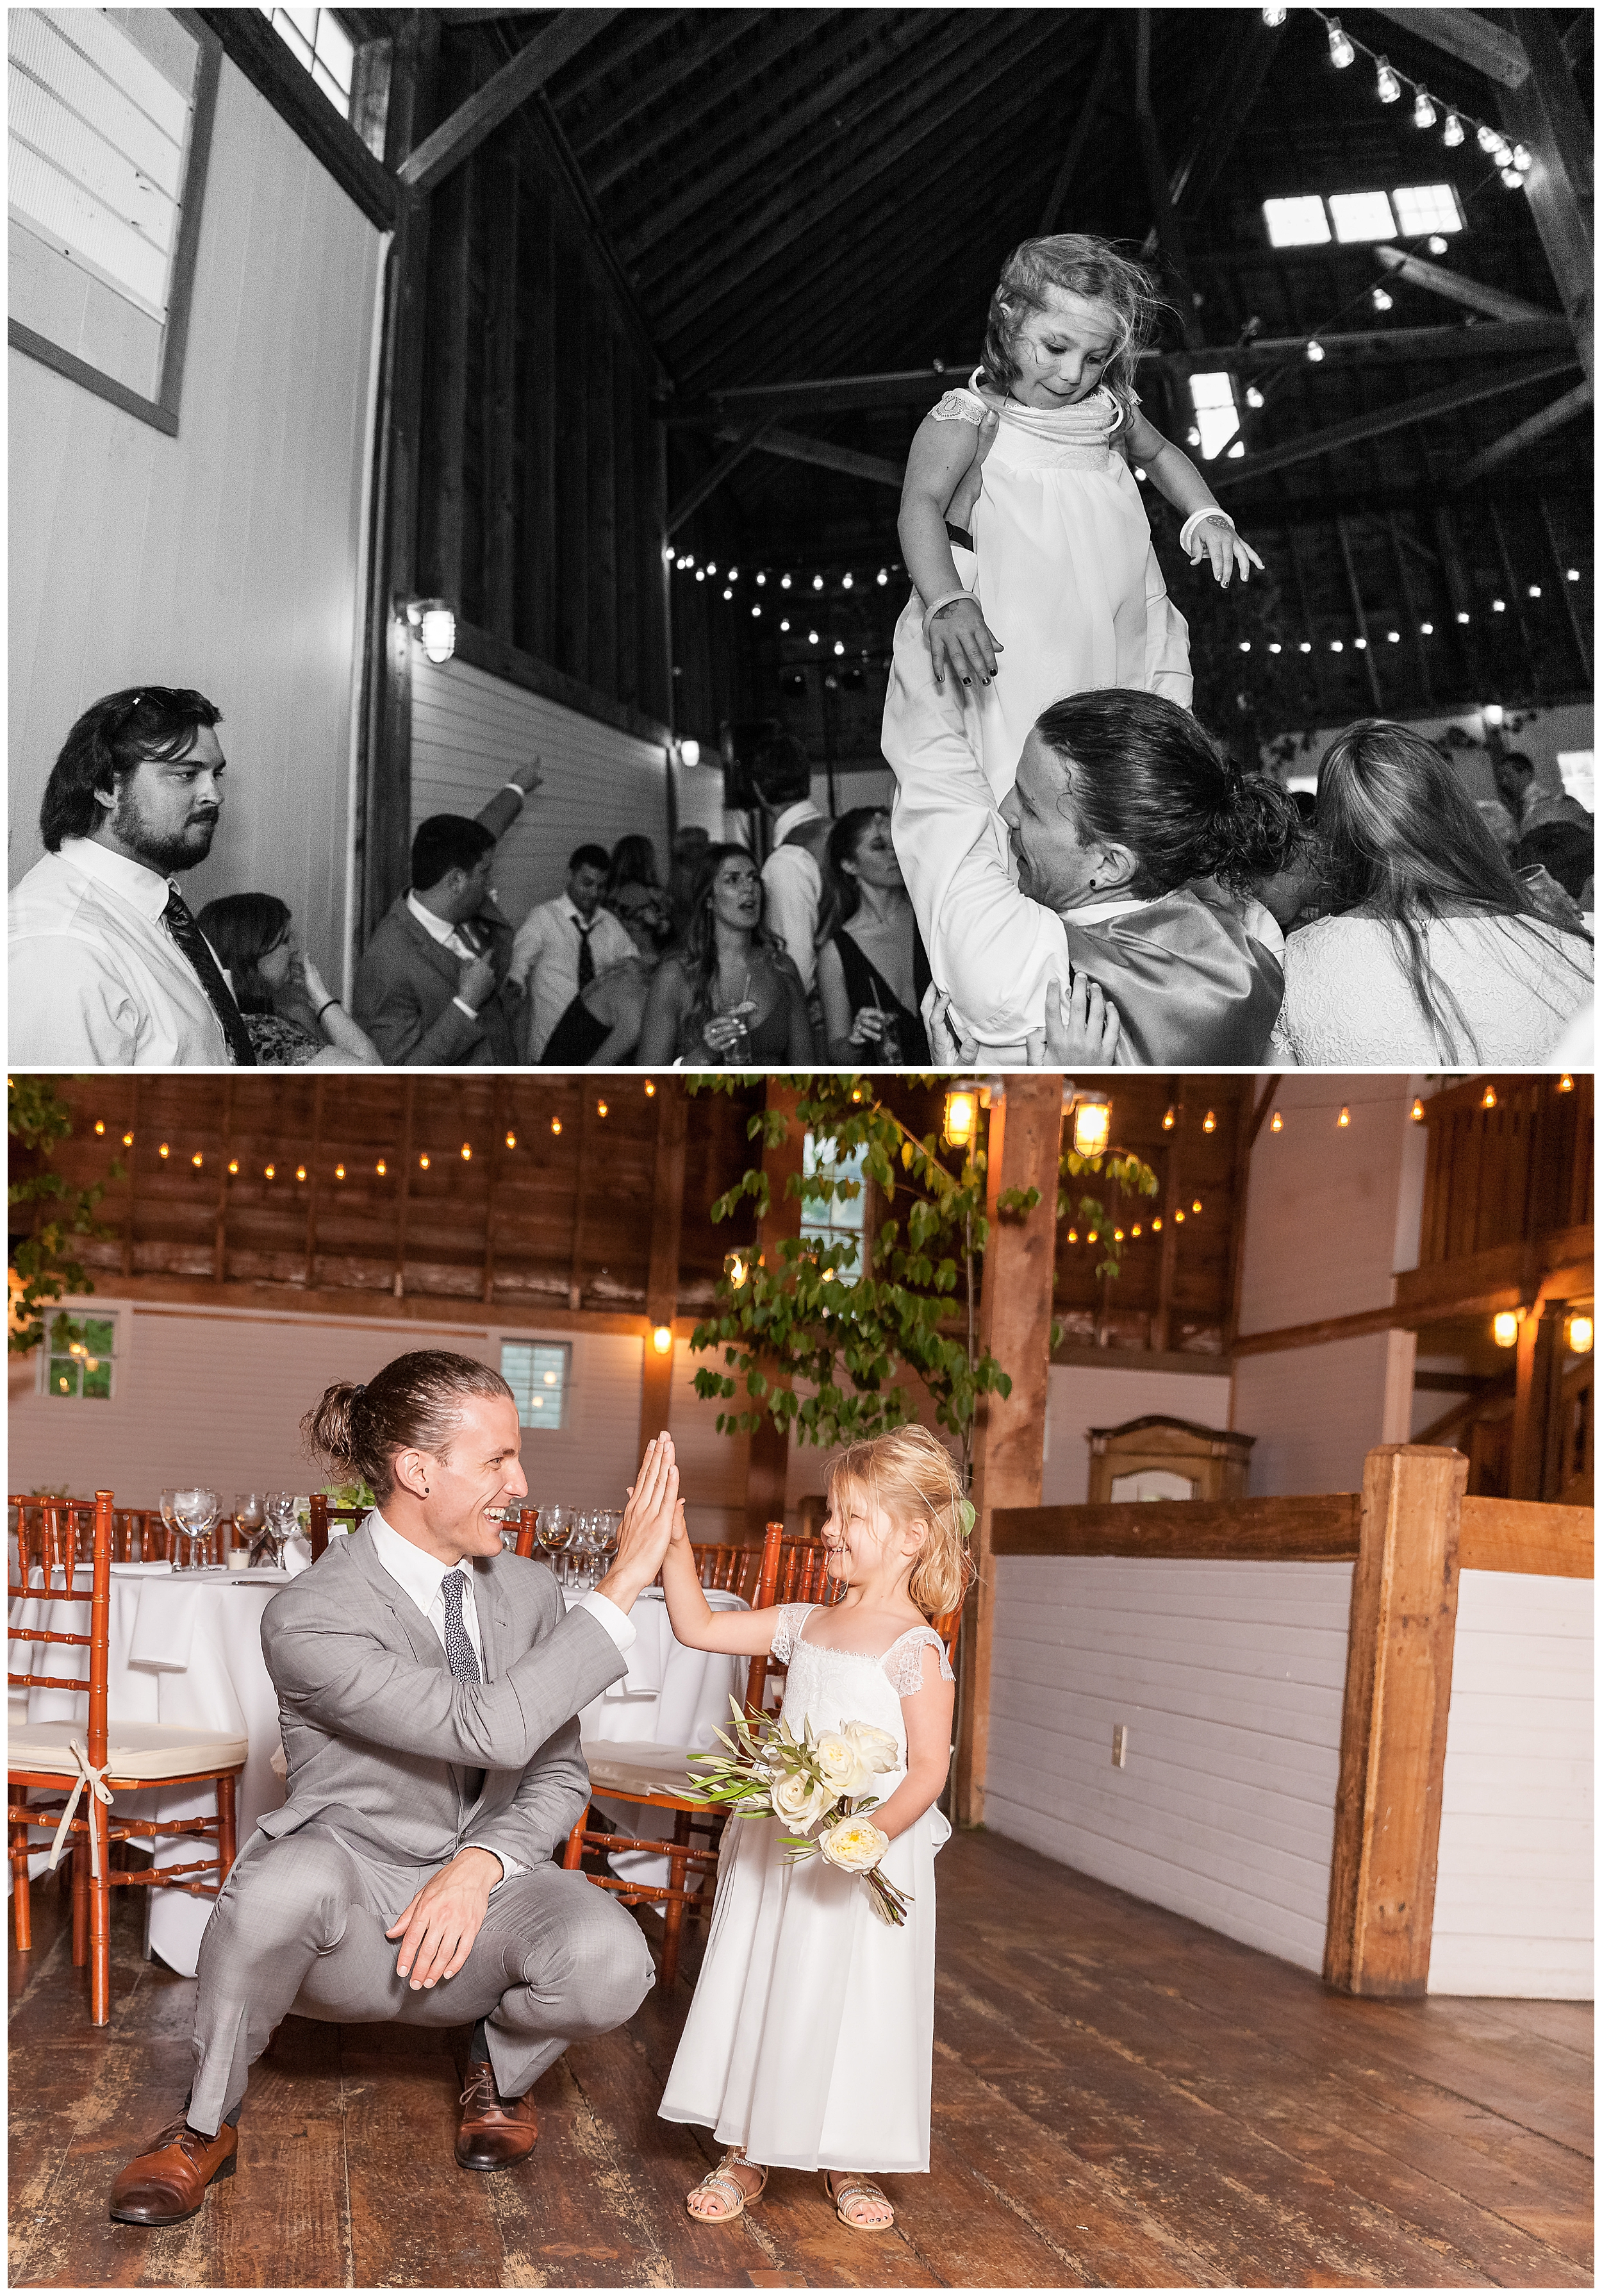 Especially the best man and one of the flower girls!